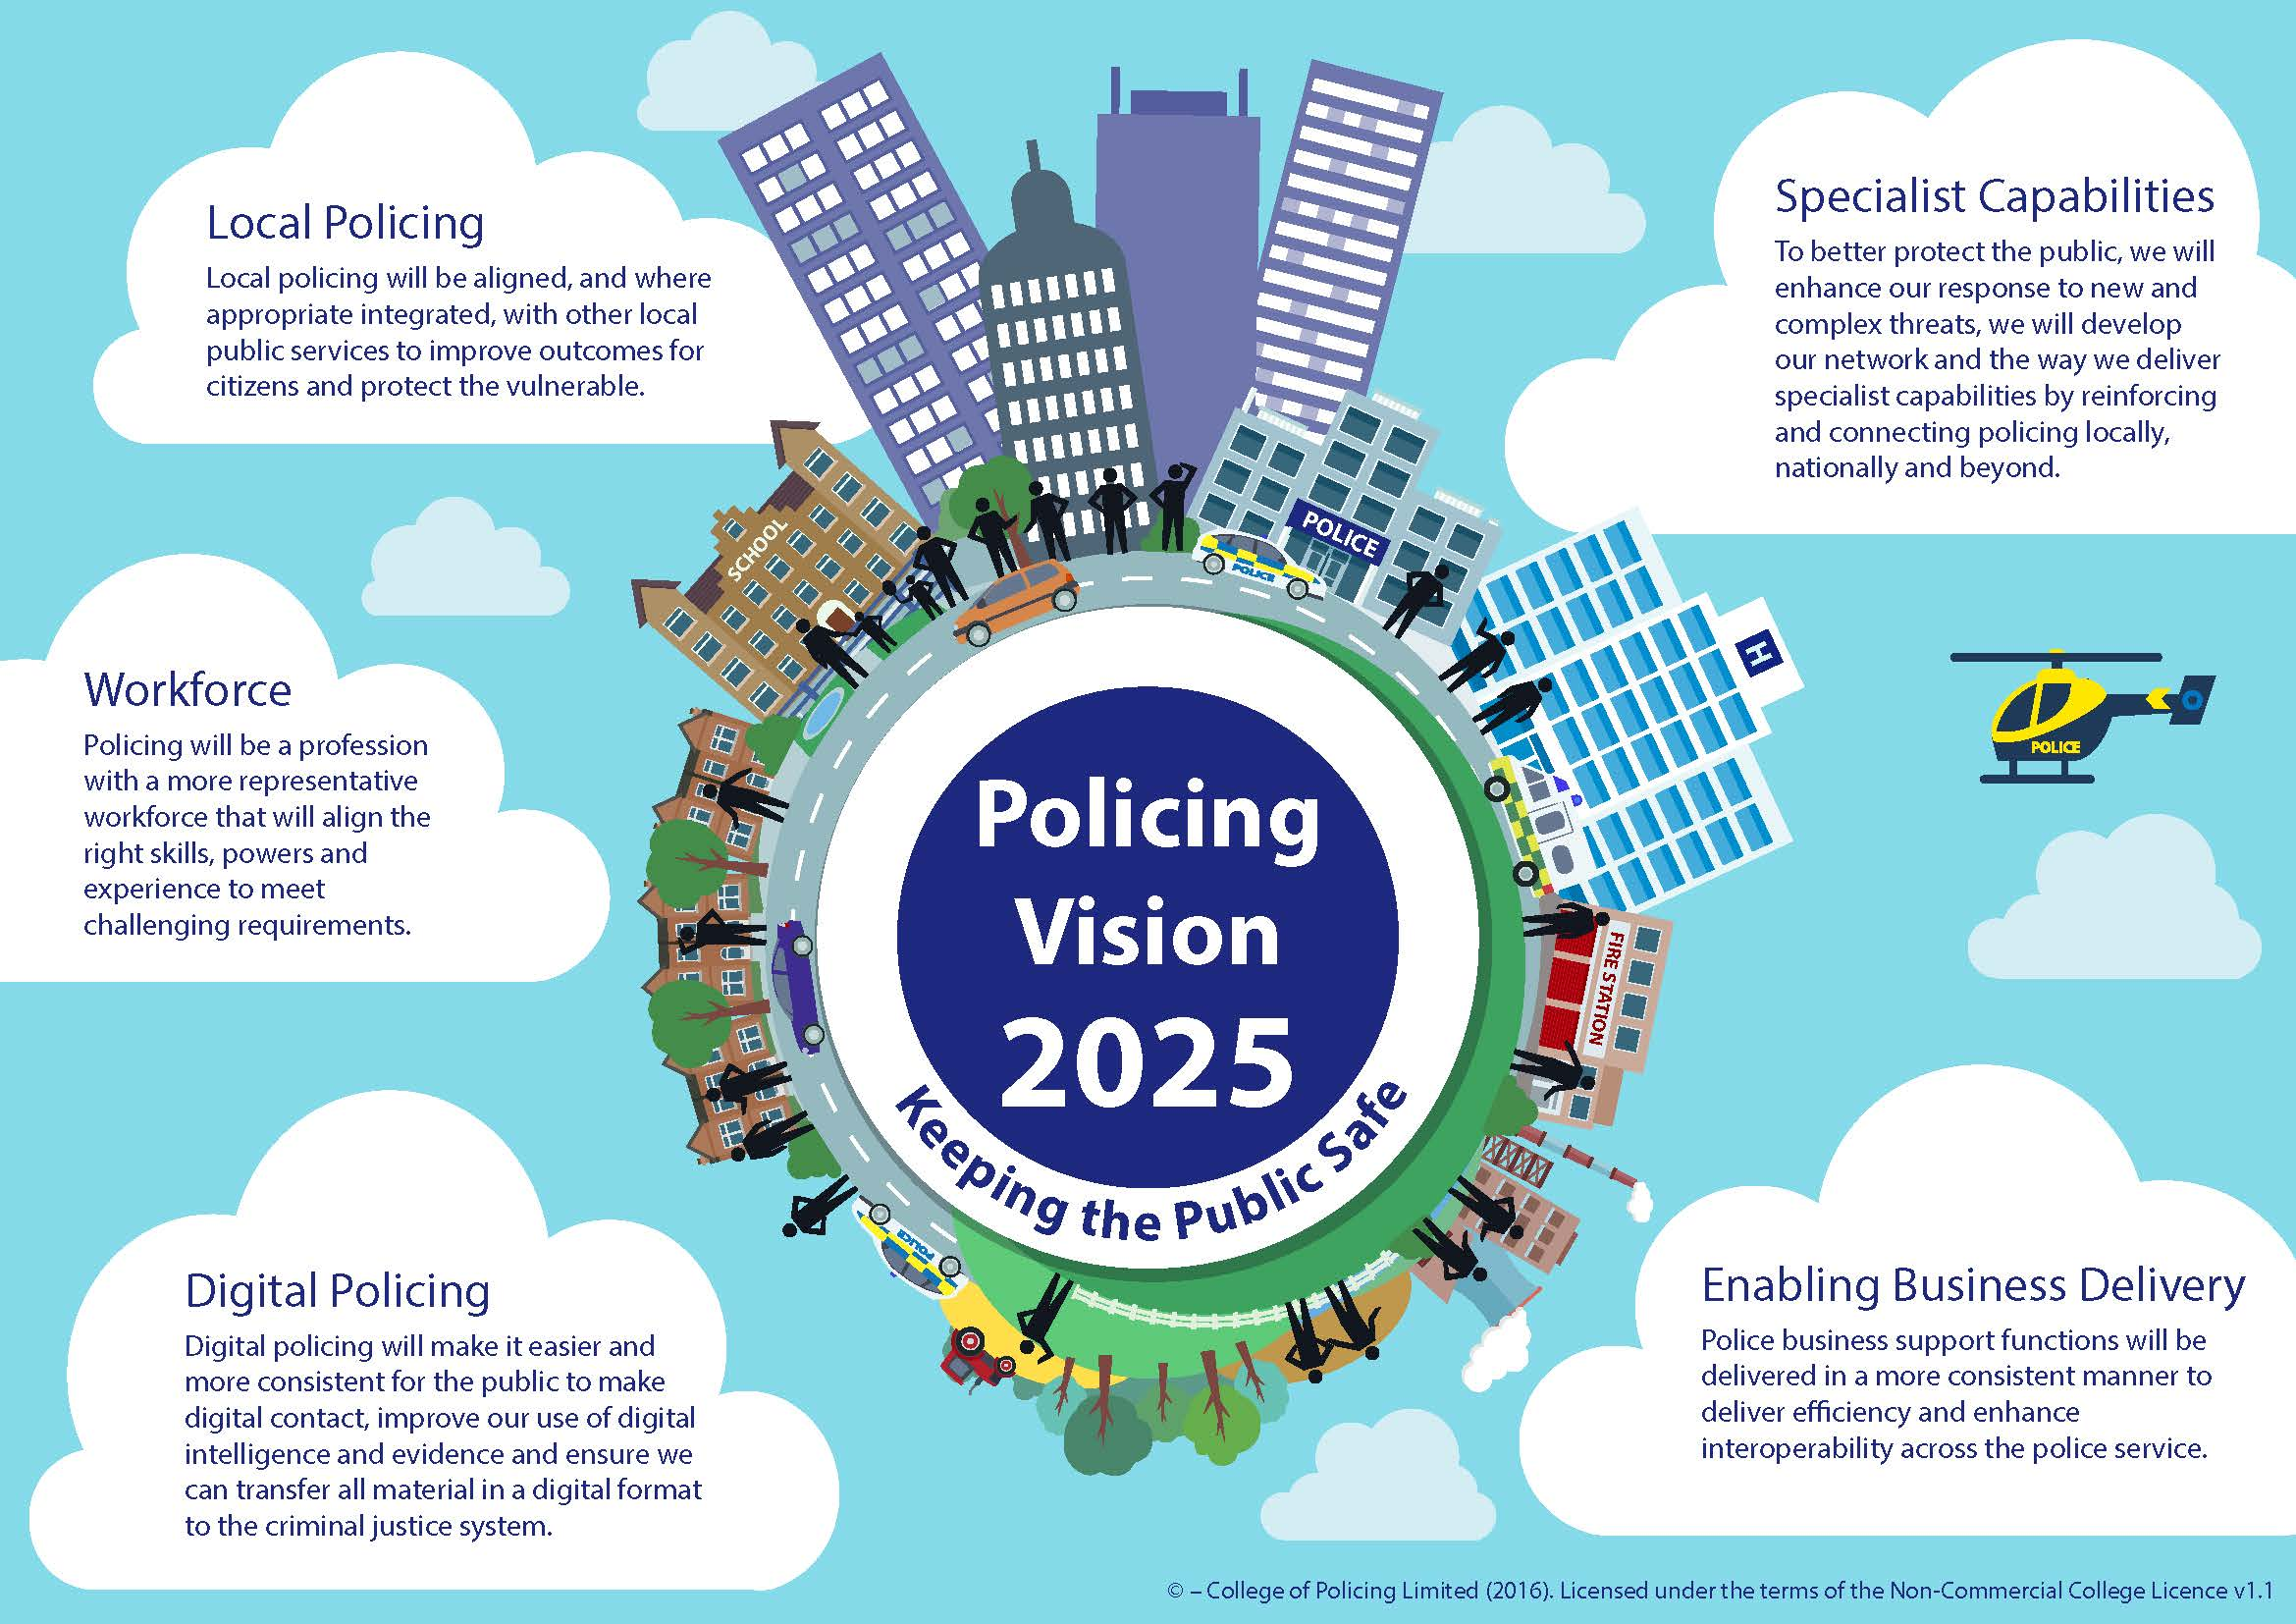 PolicingVision2025 Infographic 03 landscape